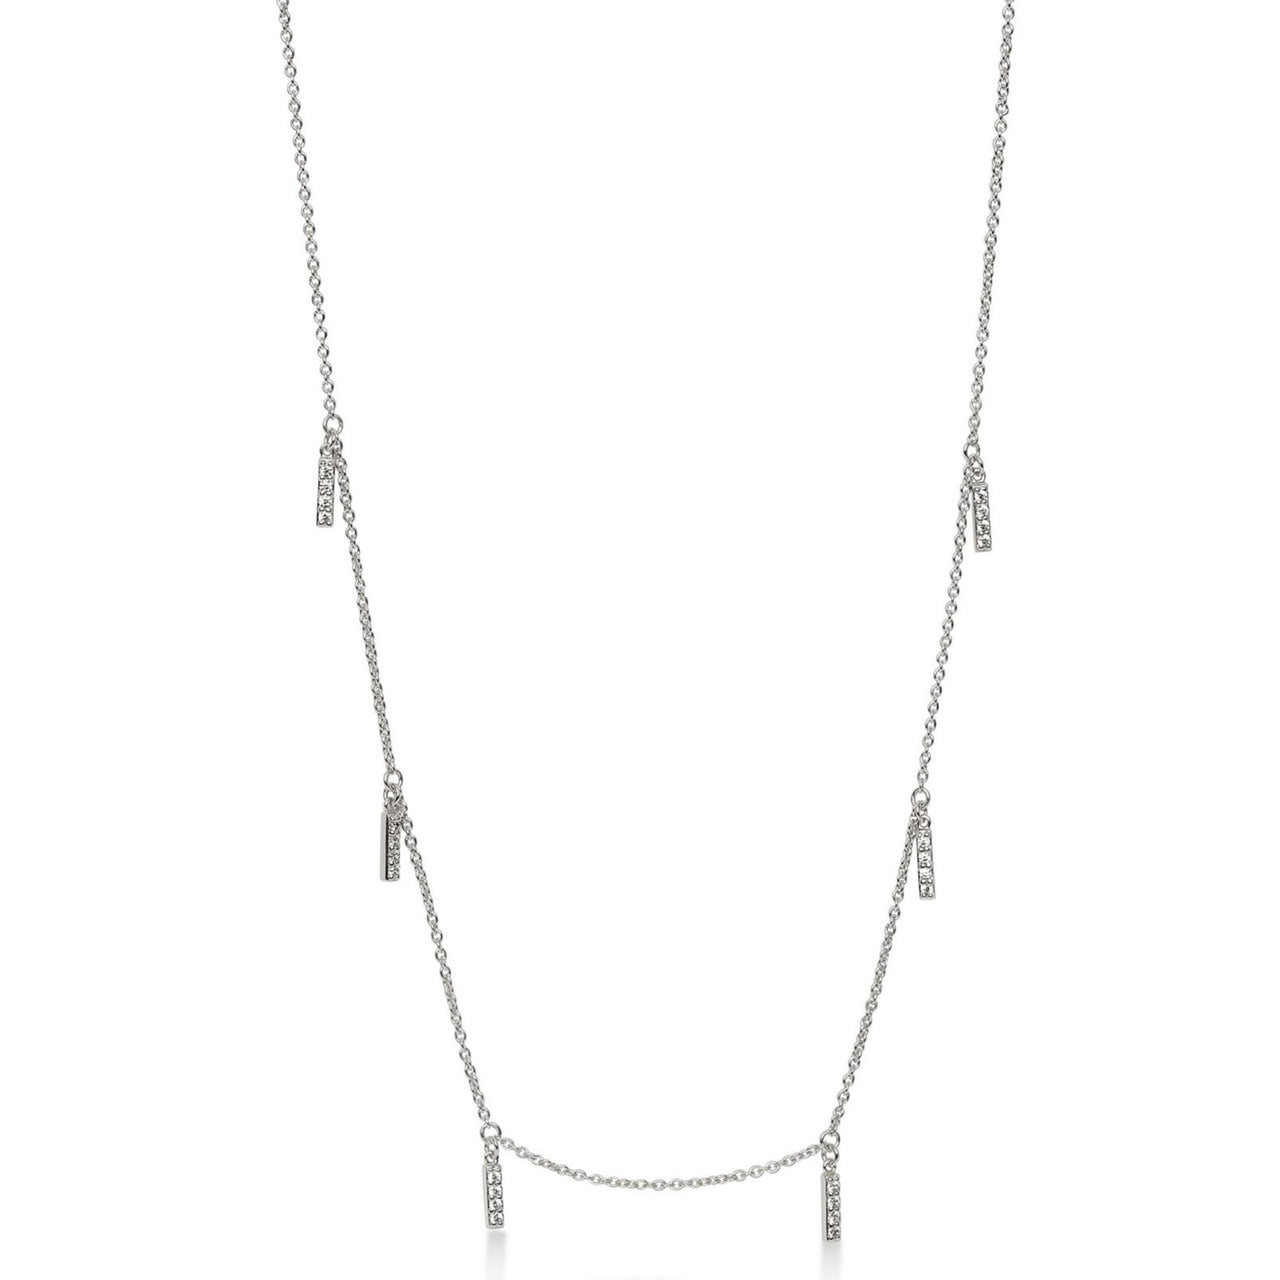 Multi Line Necklace Silver with White Pave